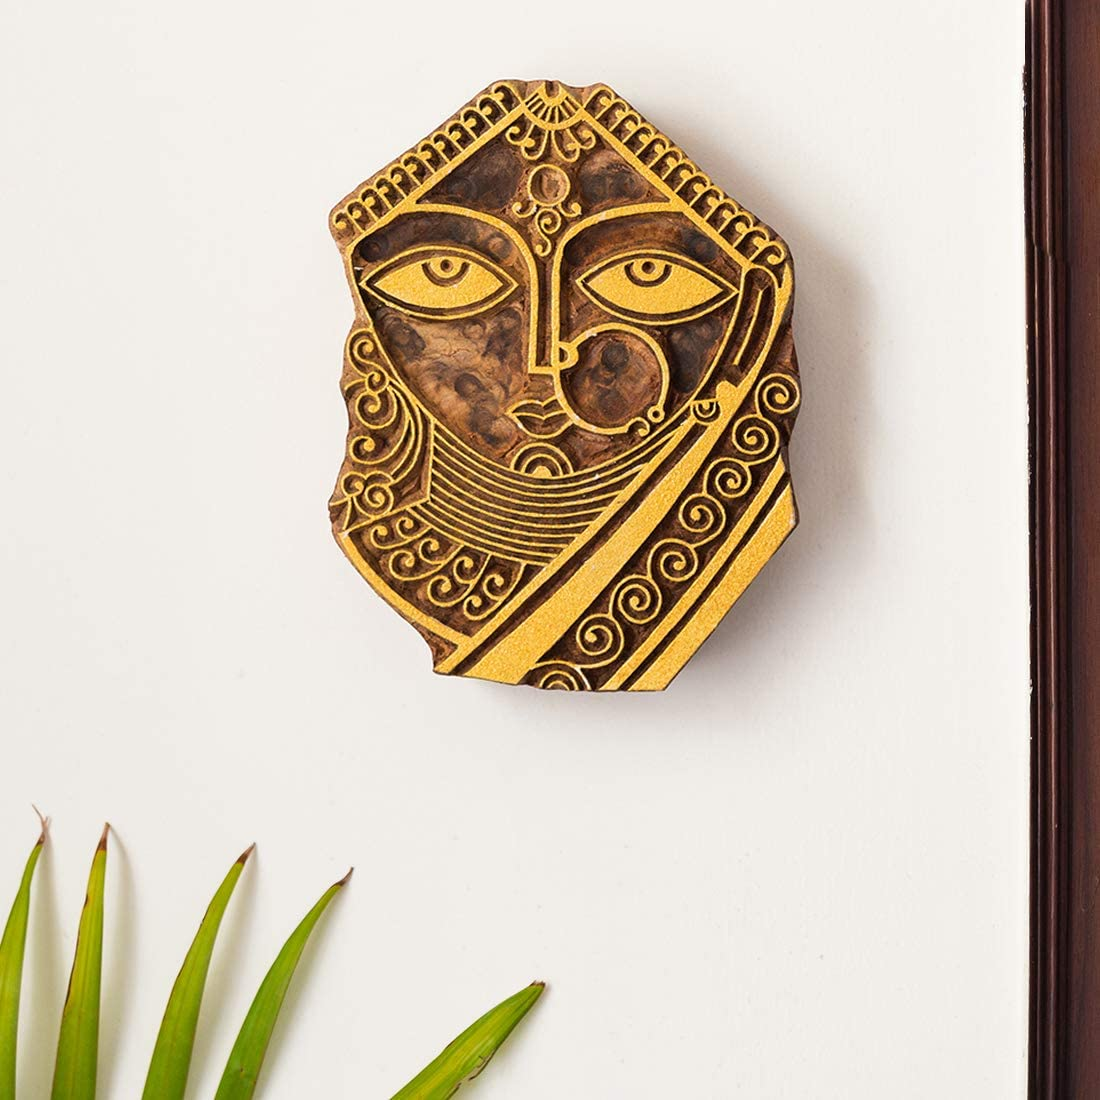 ExclusiveLane 'Madhubani Bride' Hand Carved Block Wooden Wall Décor in Sheesham Wood - Wooden Blocks for Fabric Printing Blocks Wall Decoration Items for Living Room Bedroom Wall Hanging Home Décor